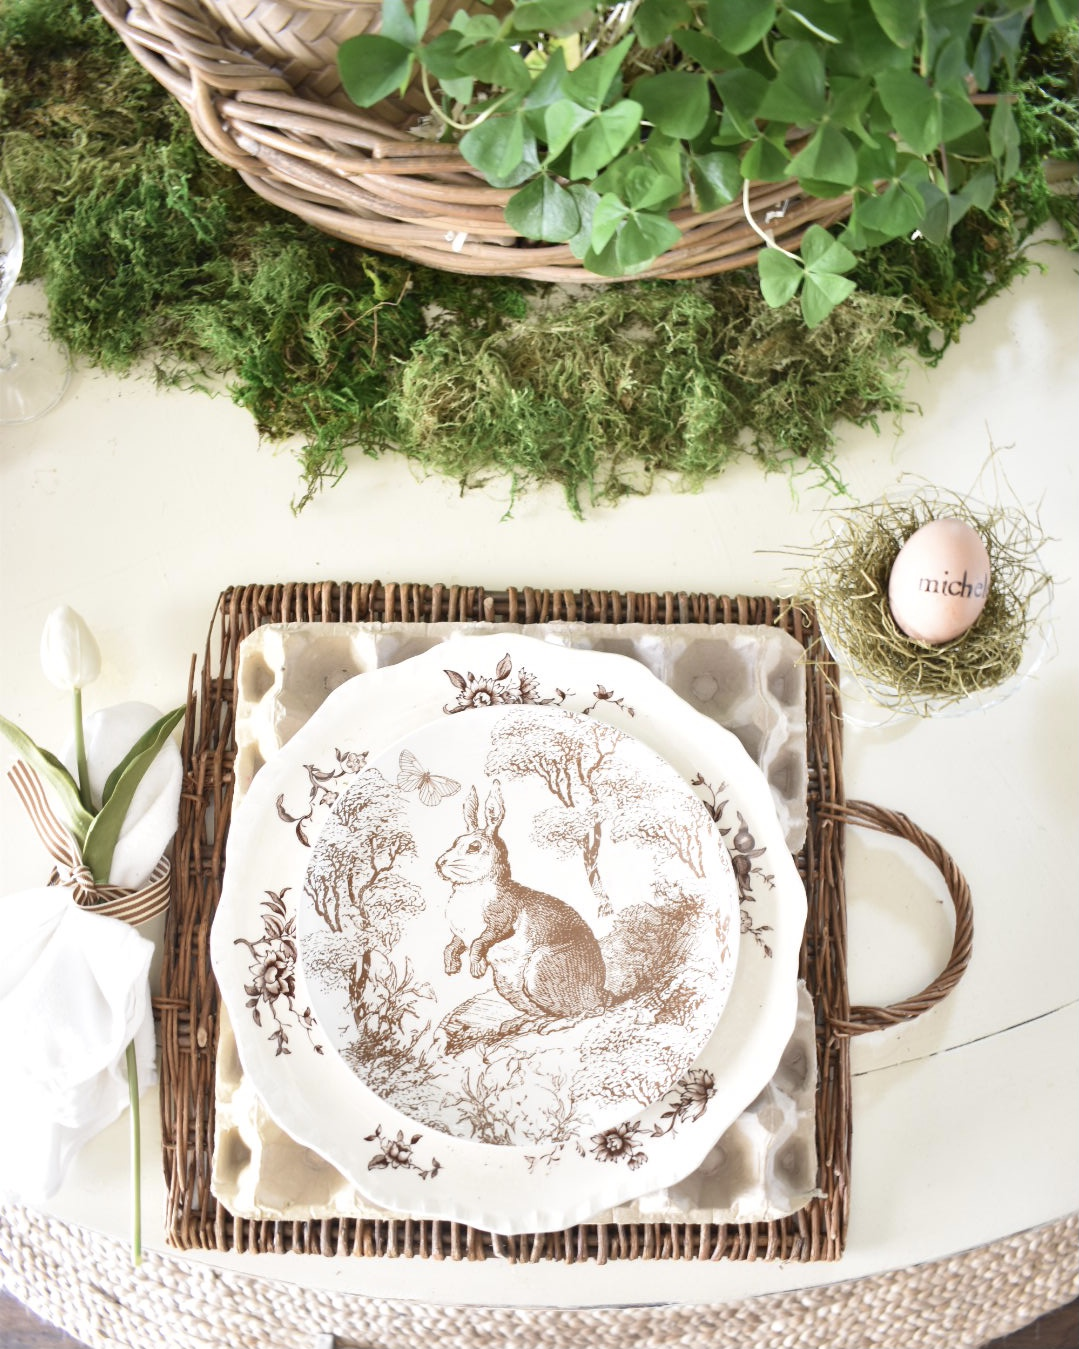 spring inspired place setting